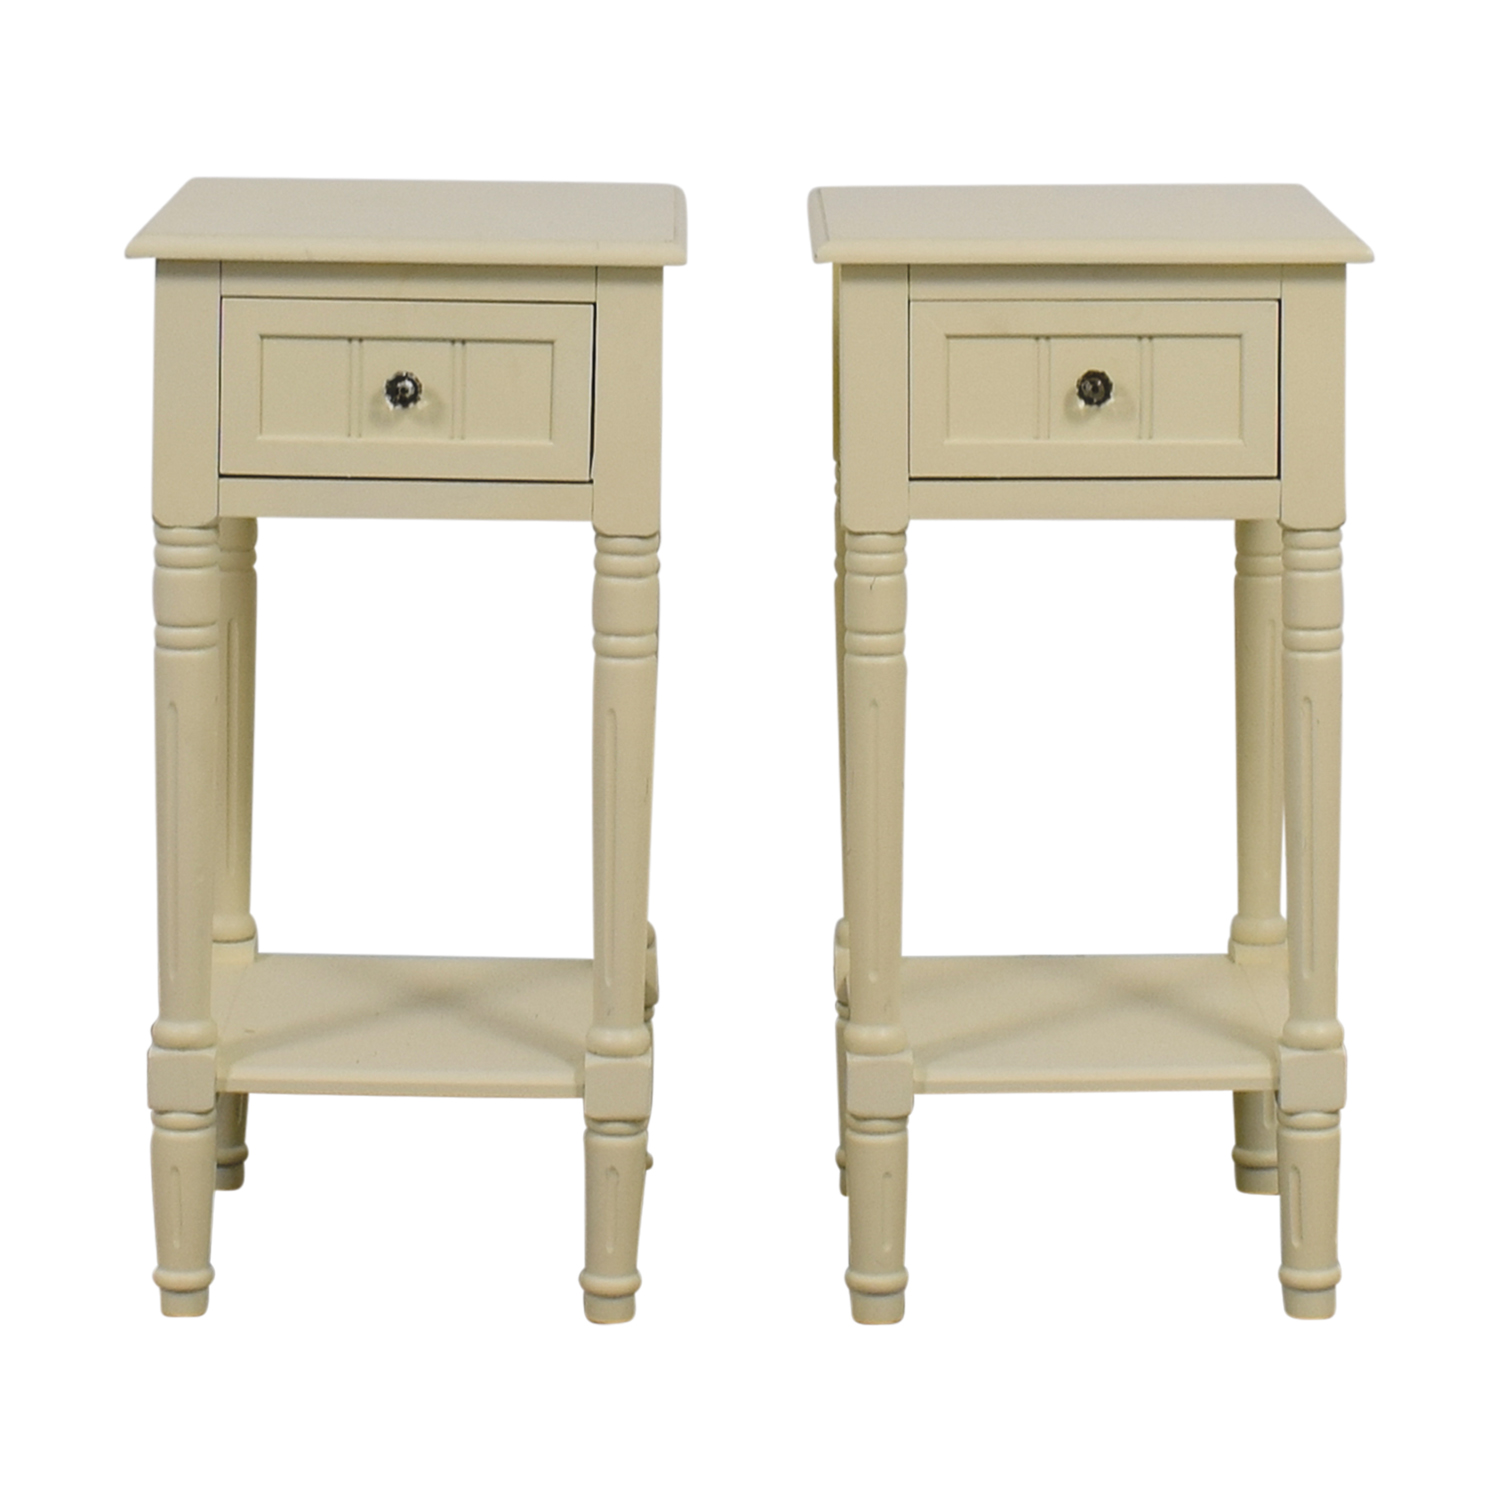 Wayfair Wayfair Lillian Off White Night Stands second hand